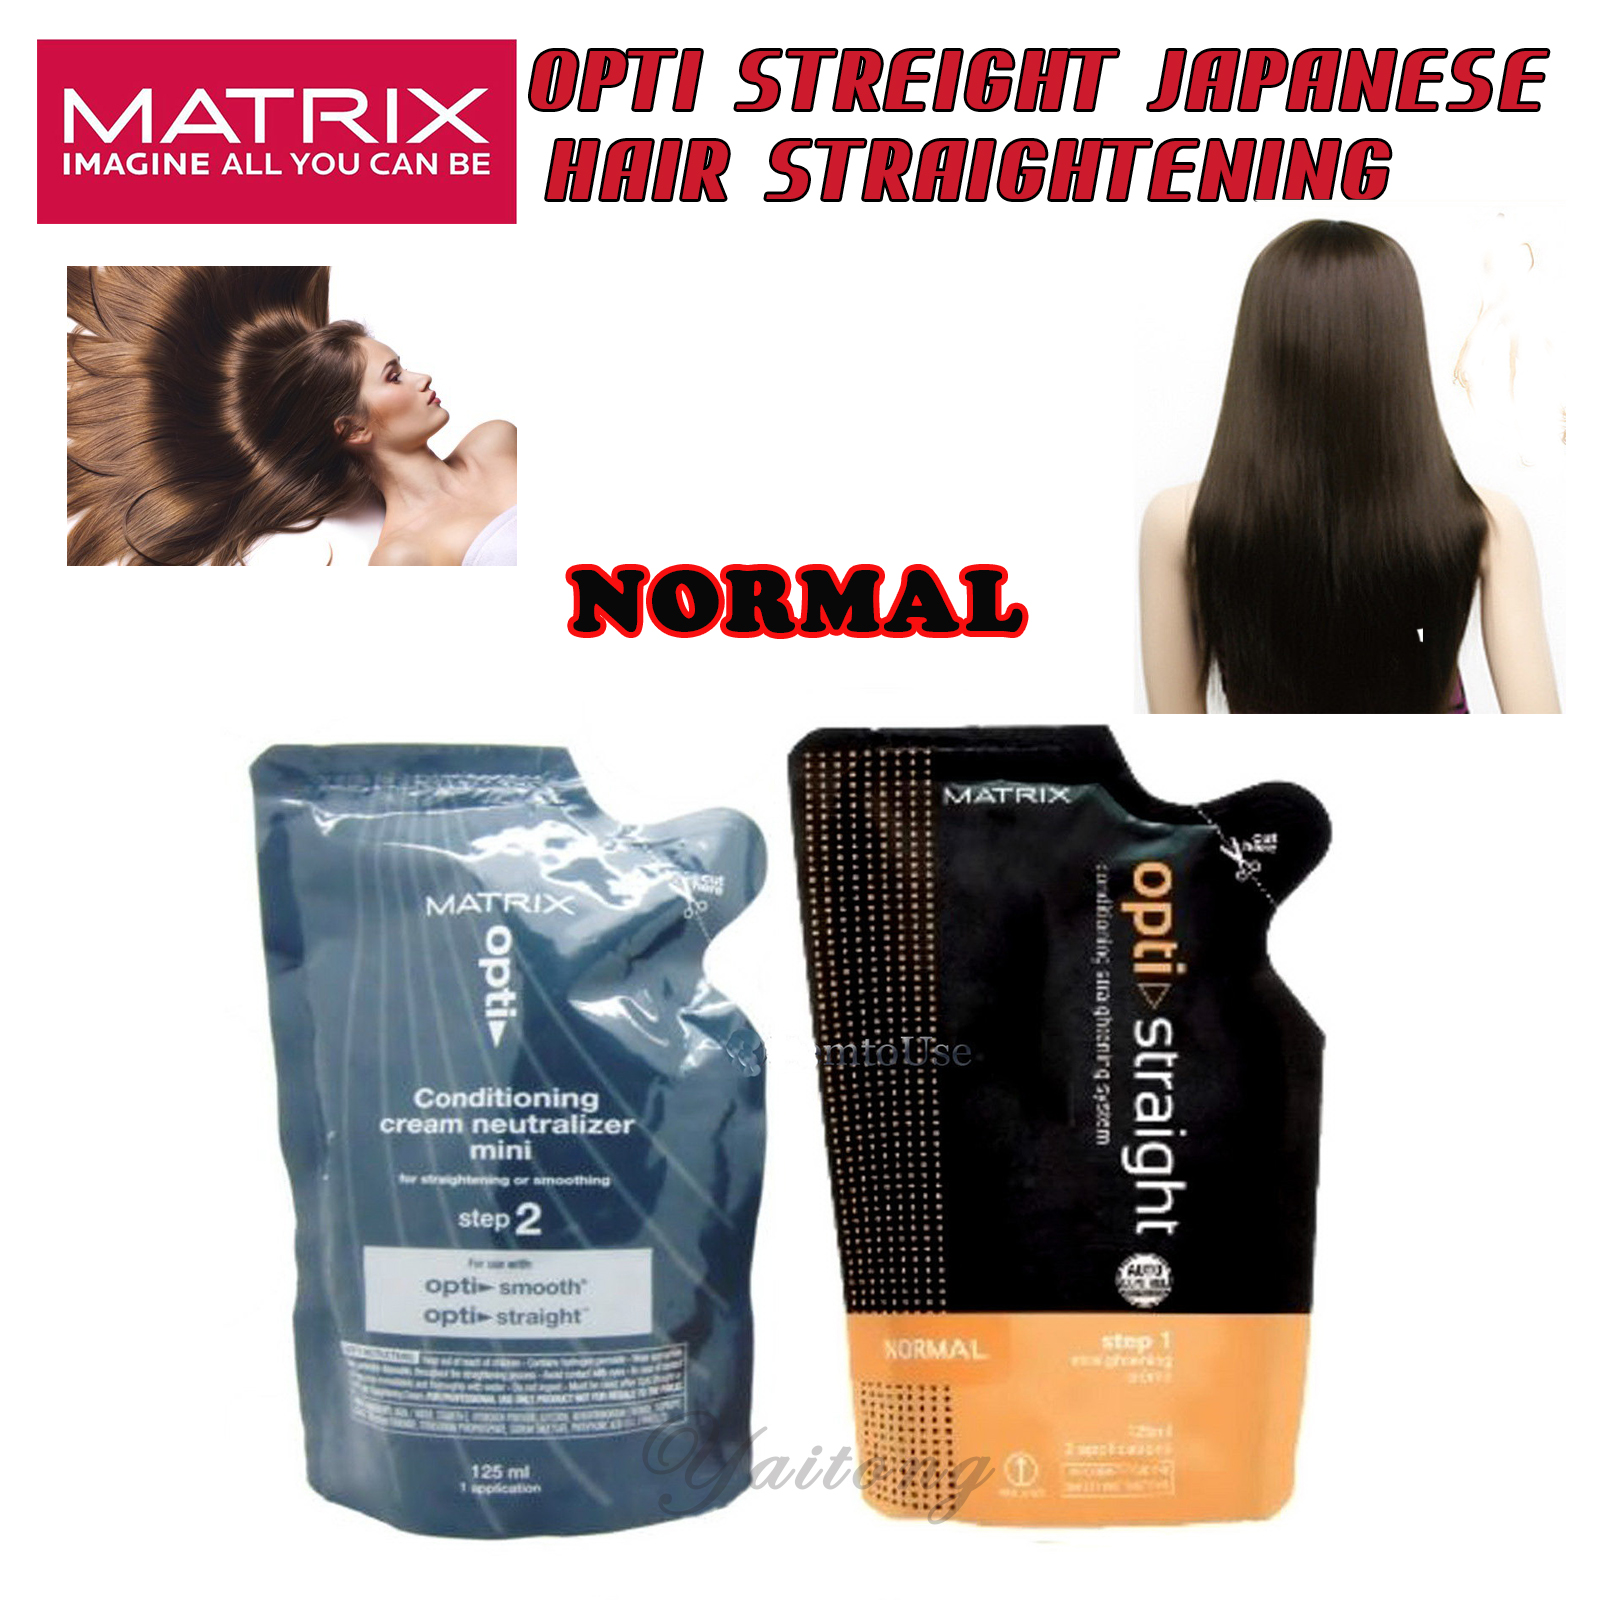 Straight permanent hair - Does Not Apply